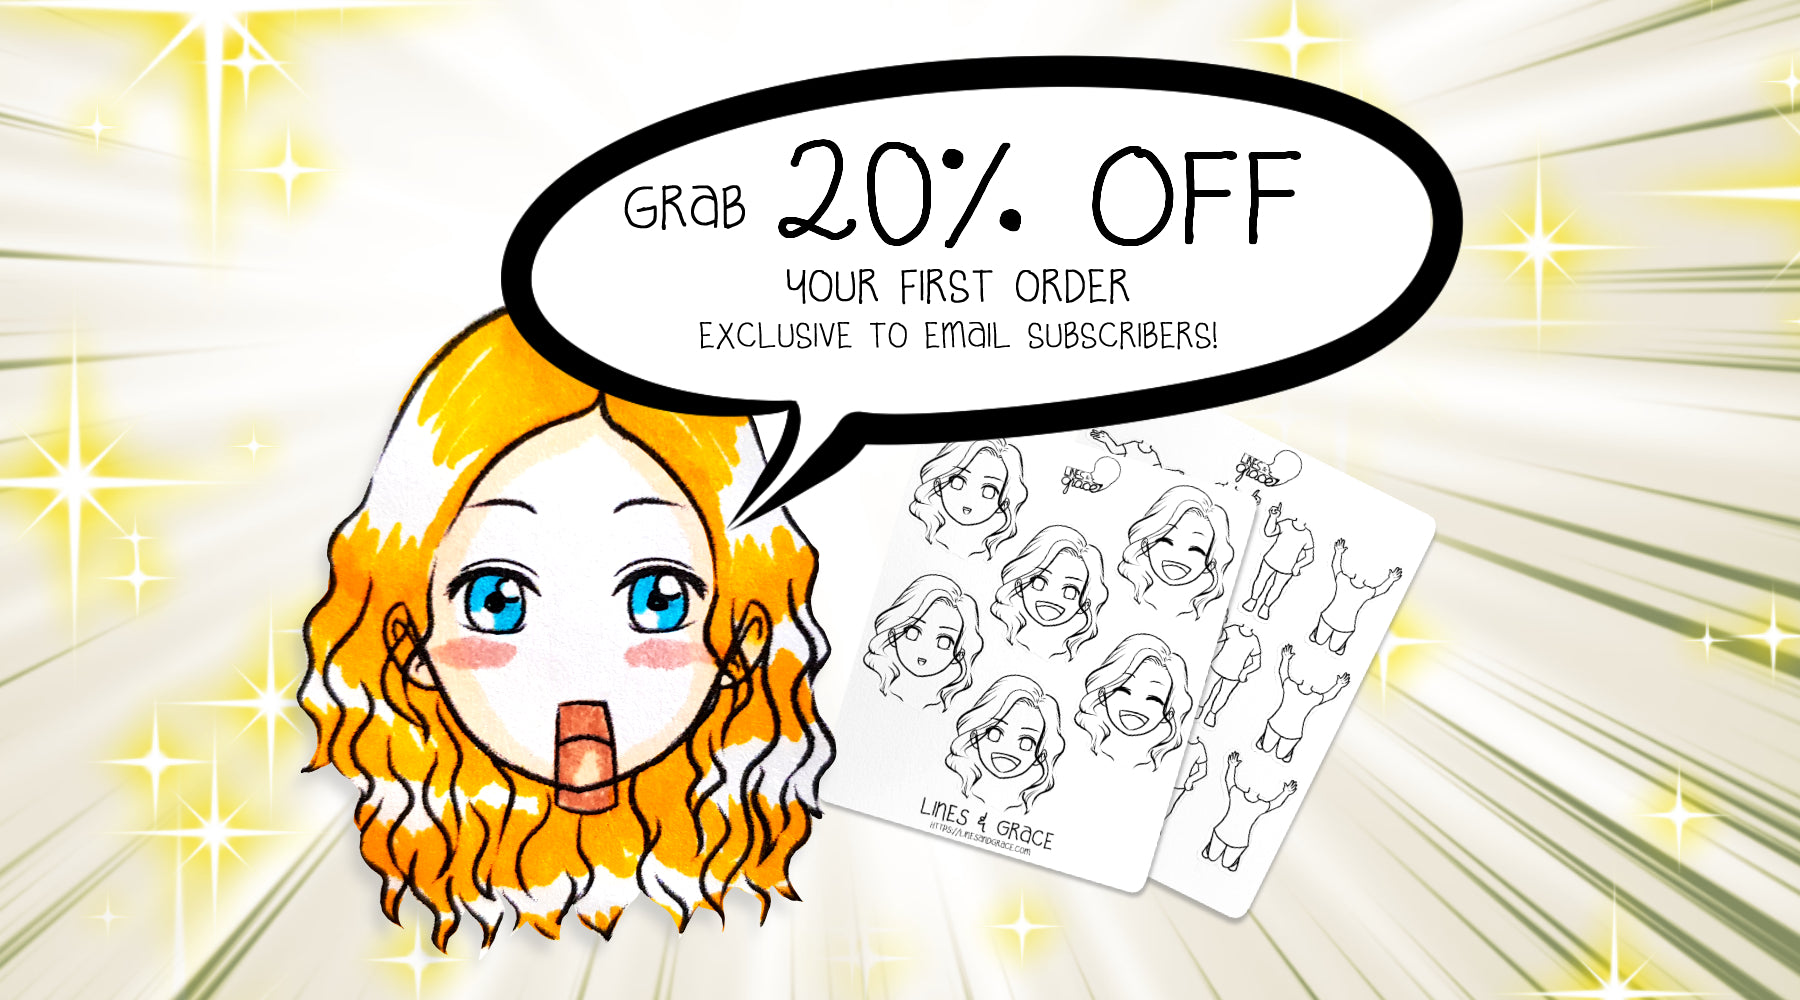 Join the Storytellers Club and get 20% off